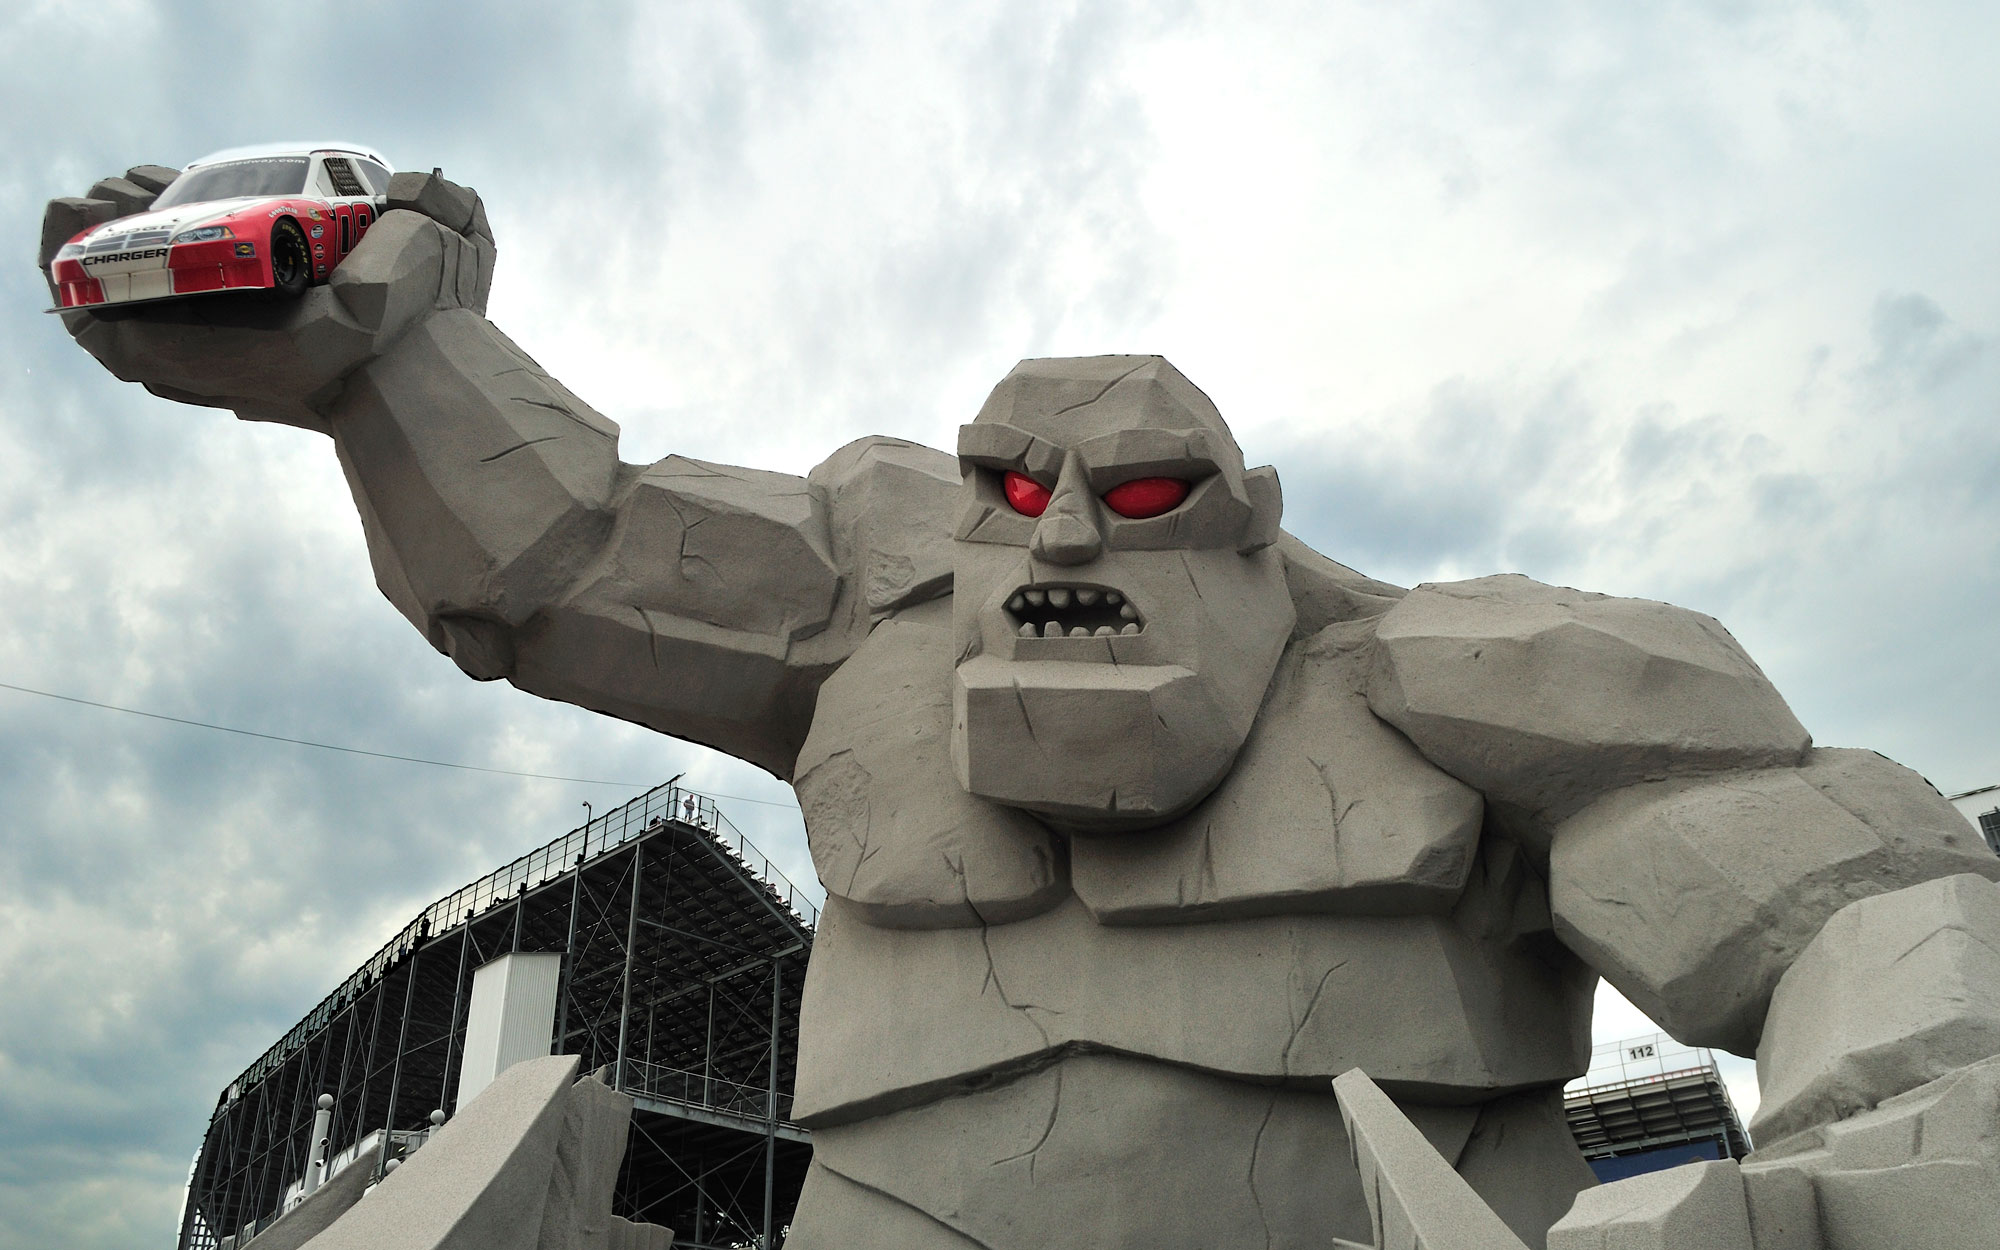 Weirdest Roadside Attractions: Delaware: Miles the Monster